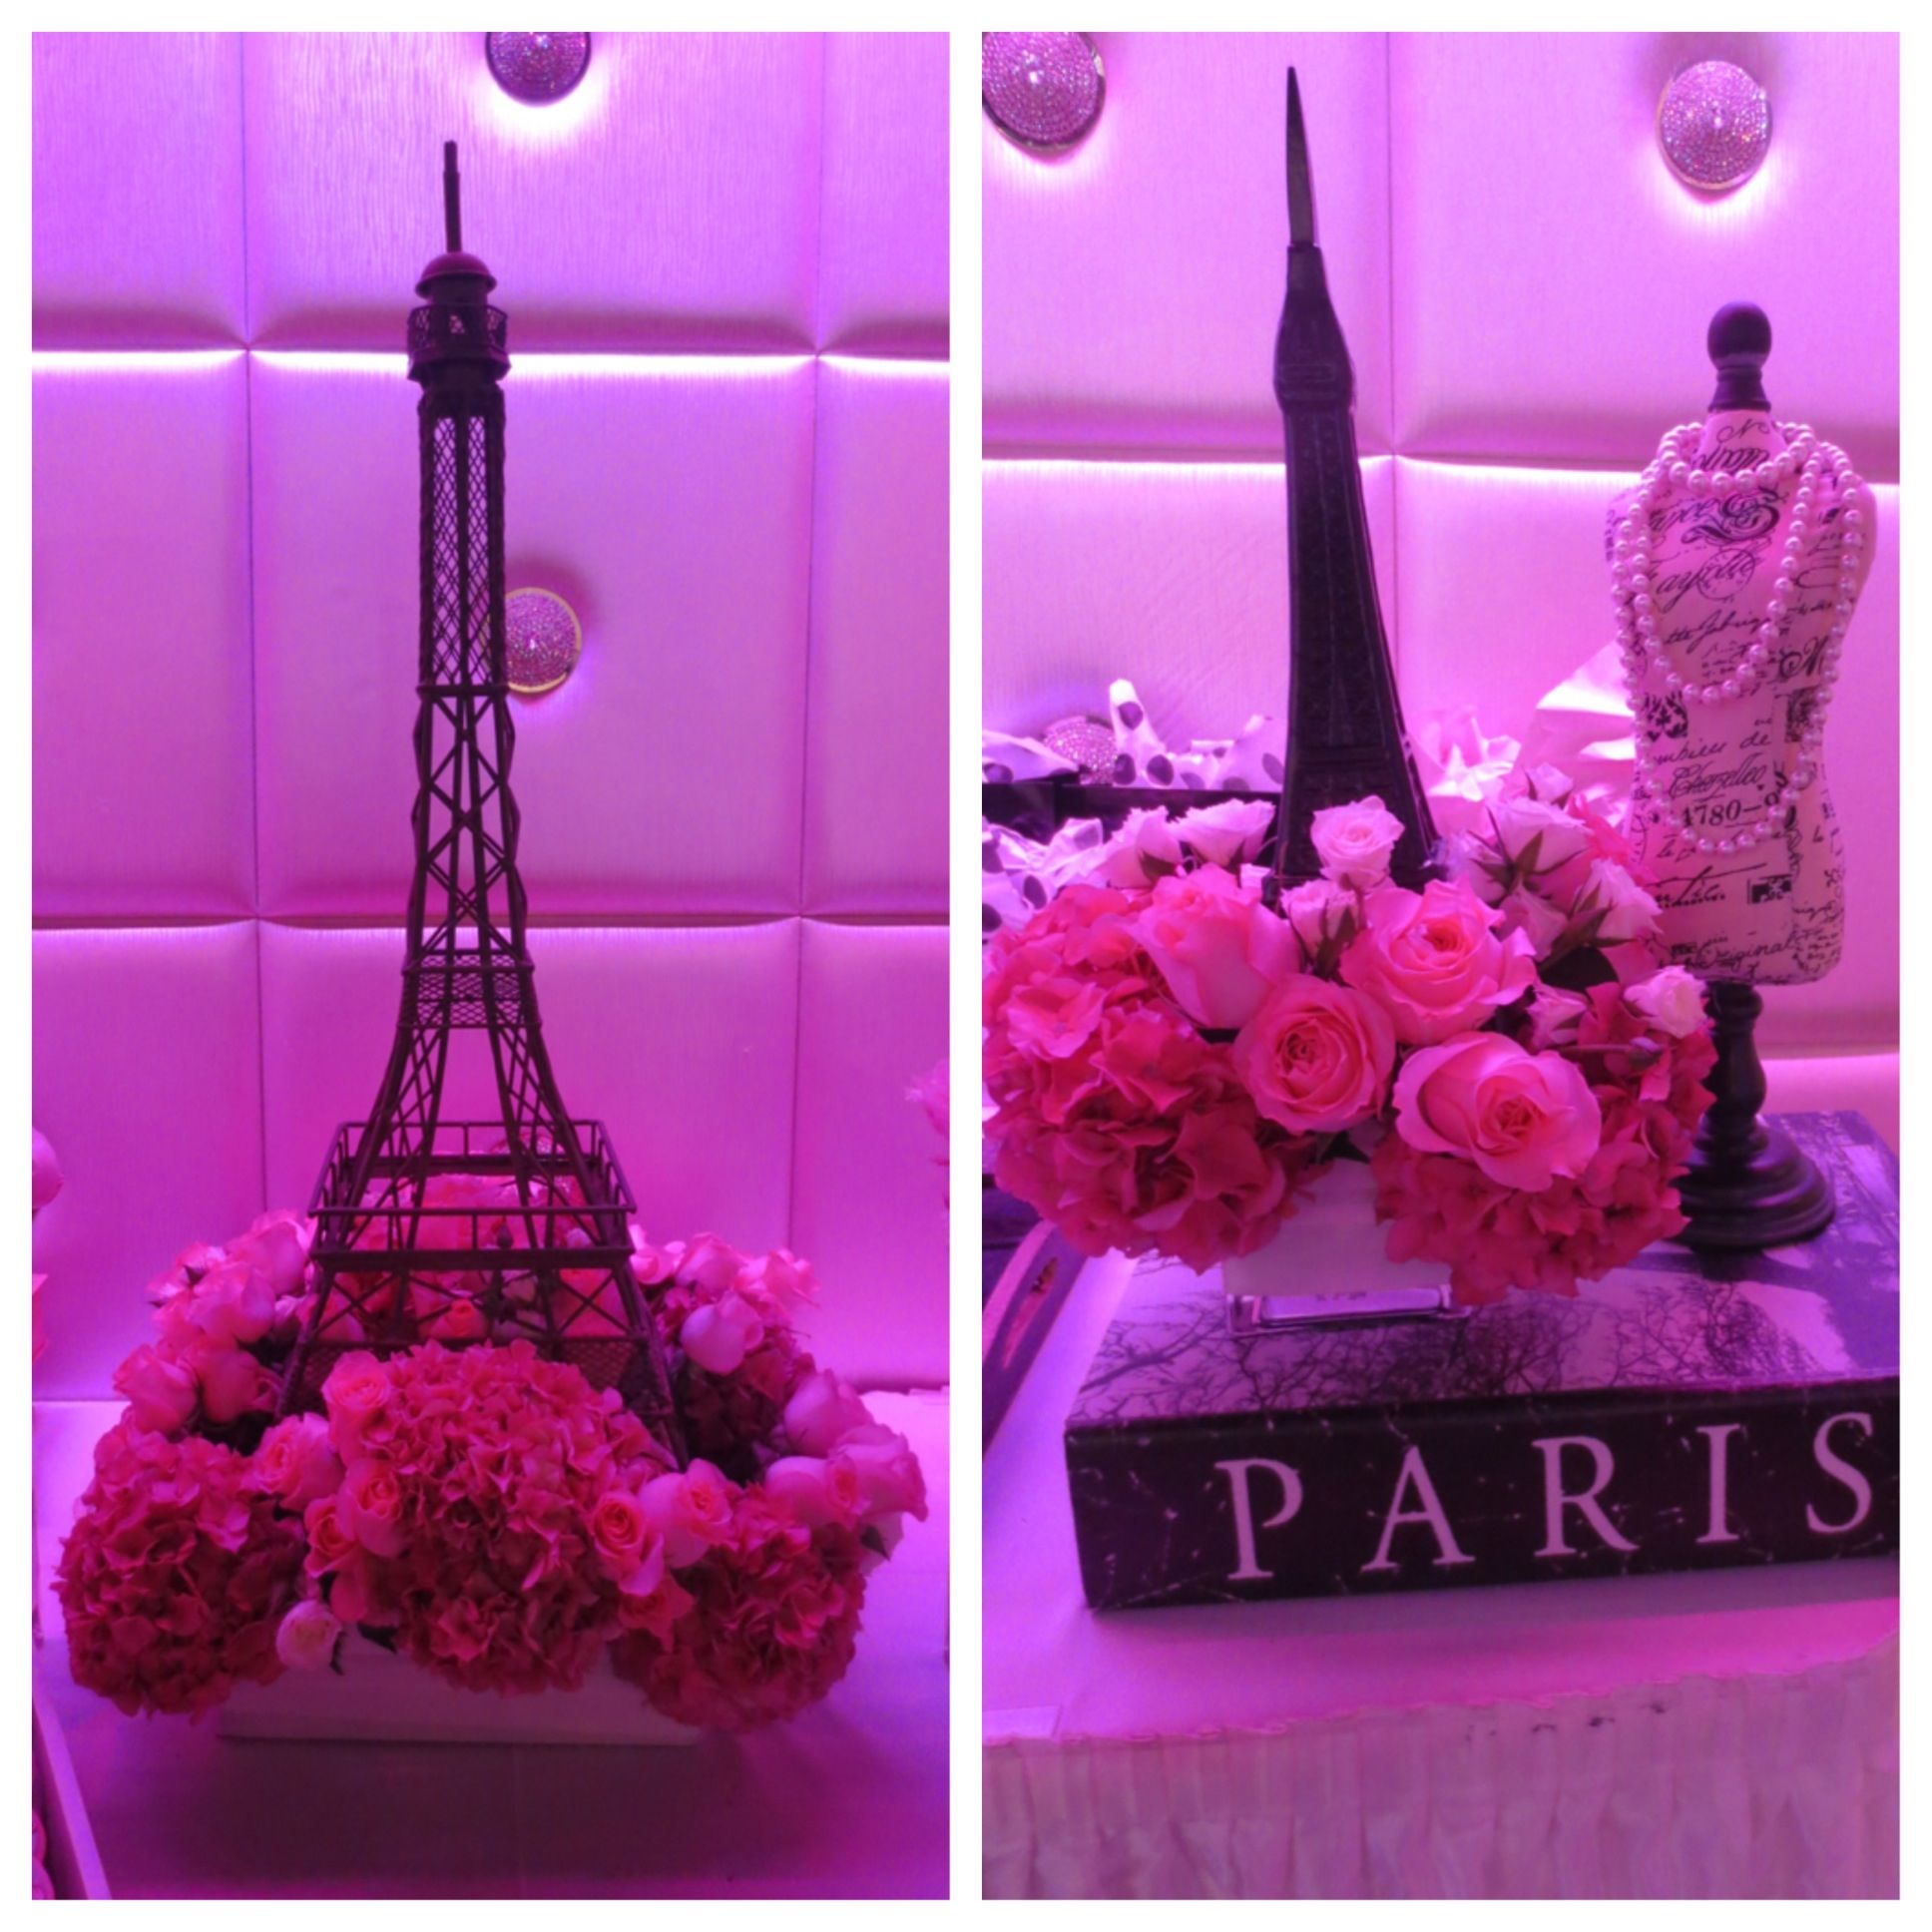 Paris decorations for quinceaneras - Flowers By Butterfly Floral In Los Angeles French Bridal Shower Paris Theme